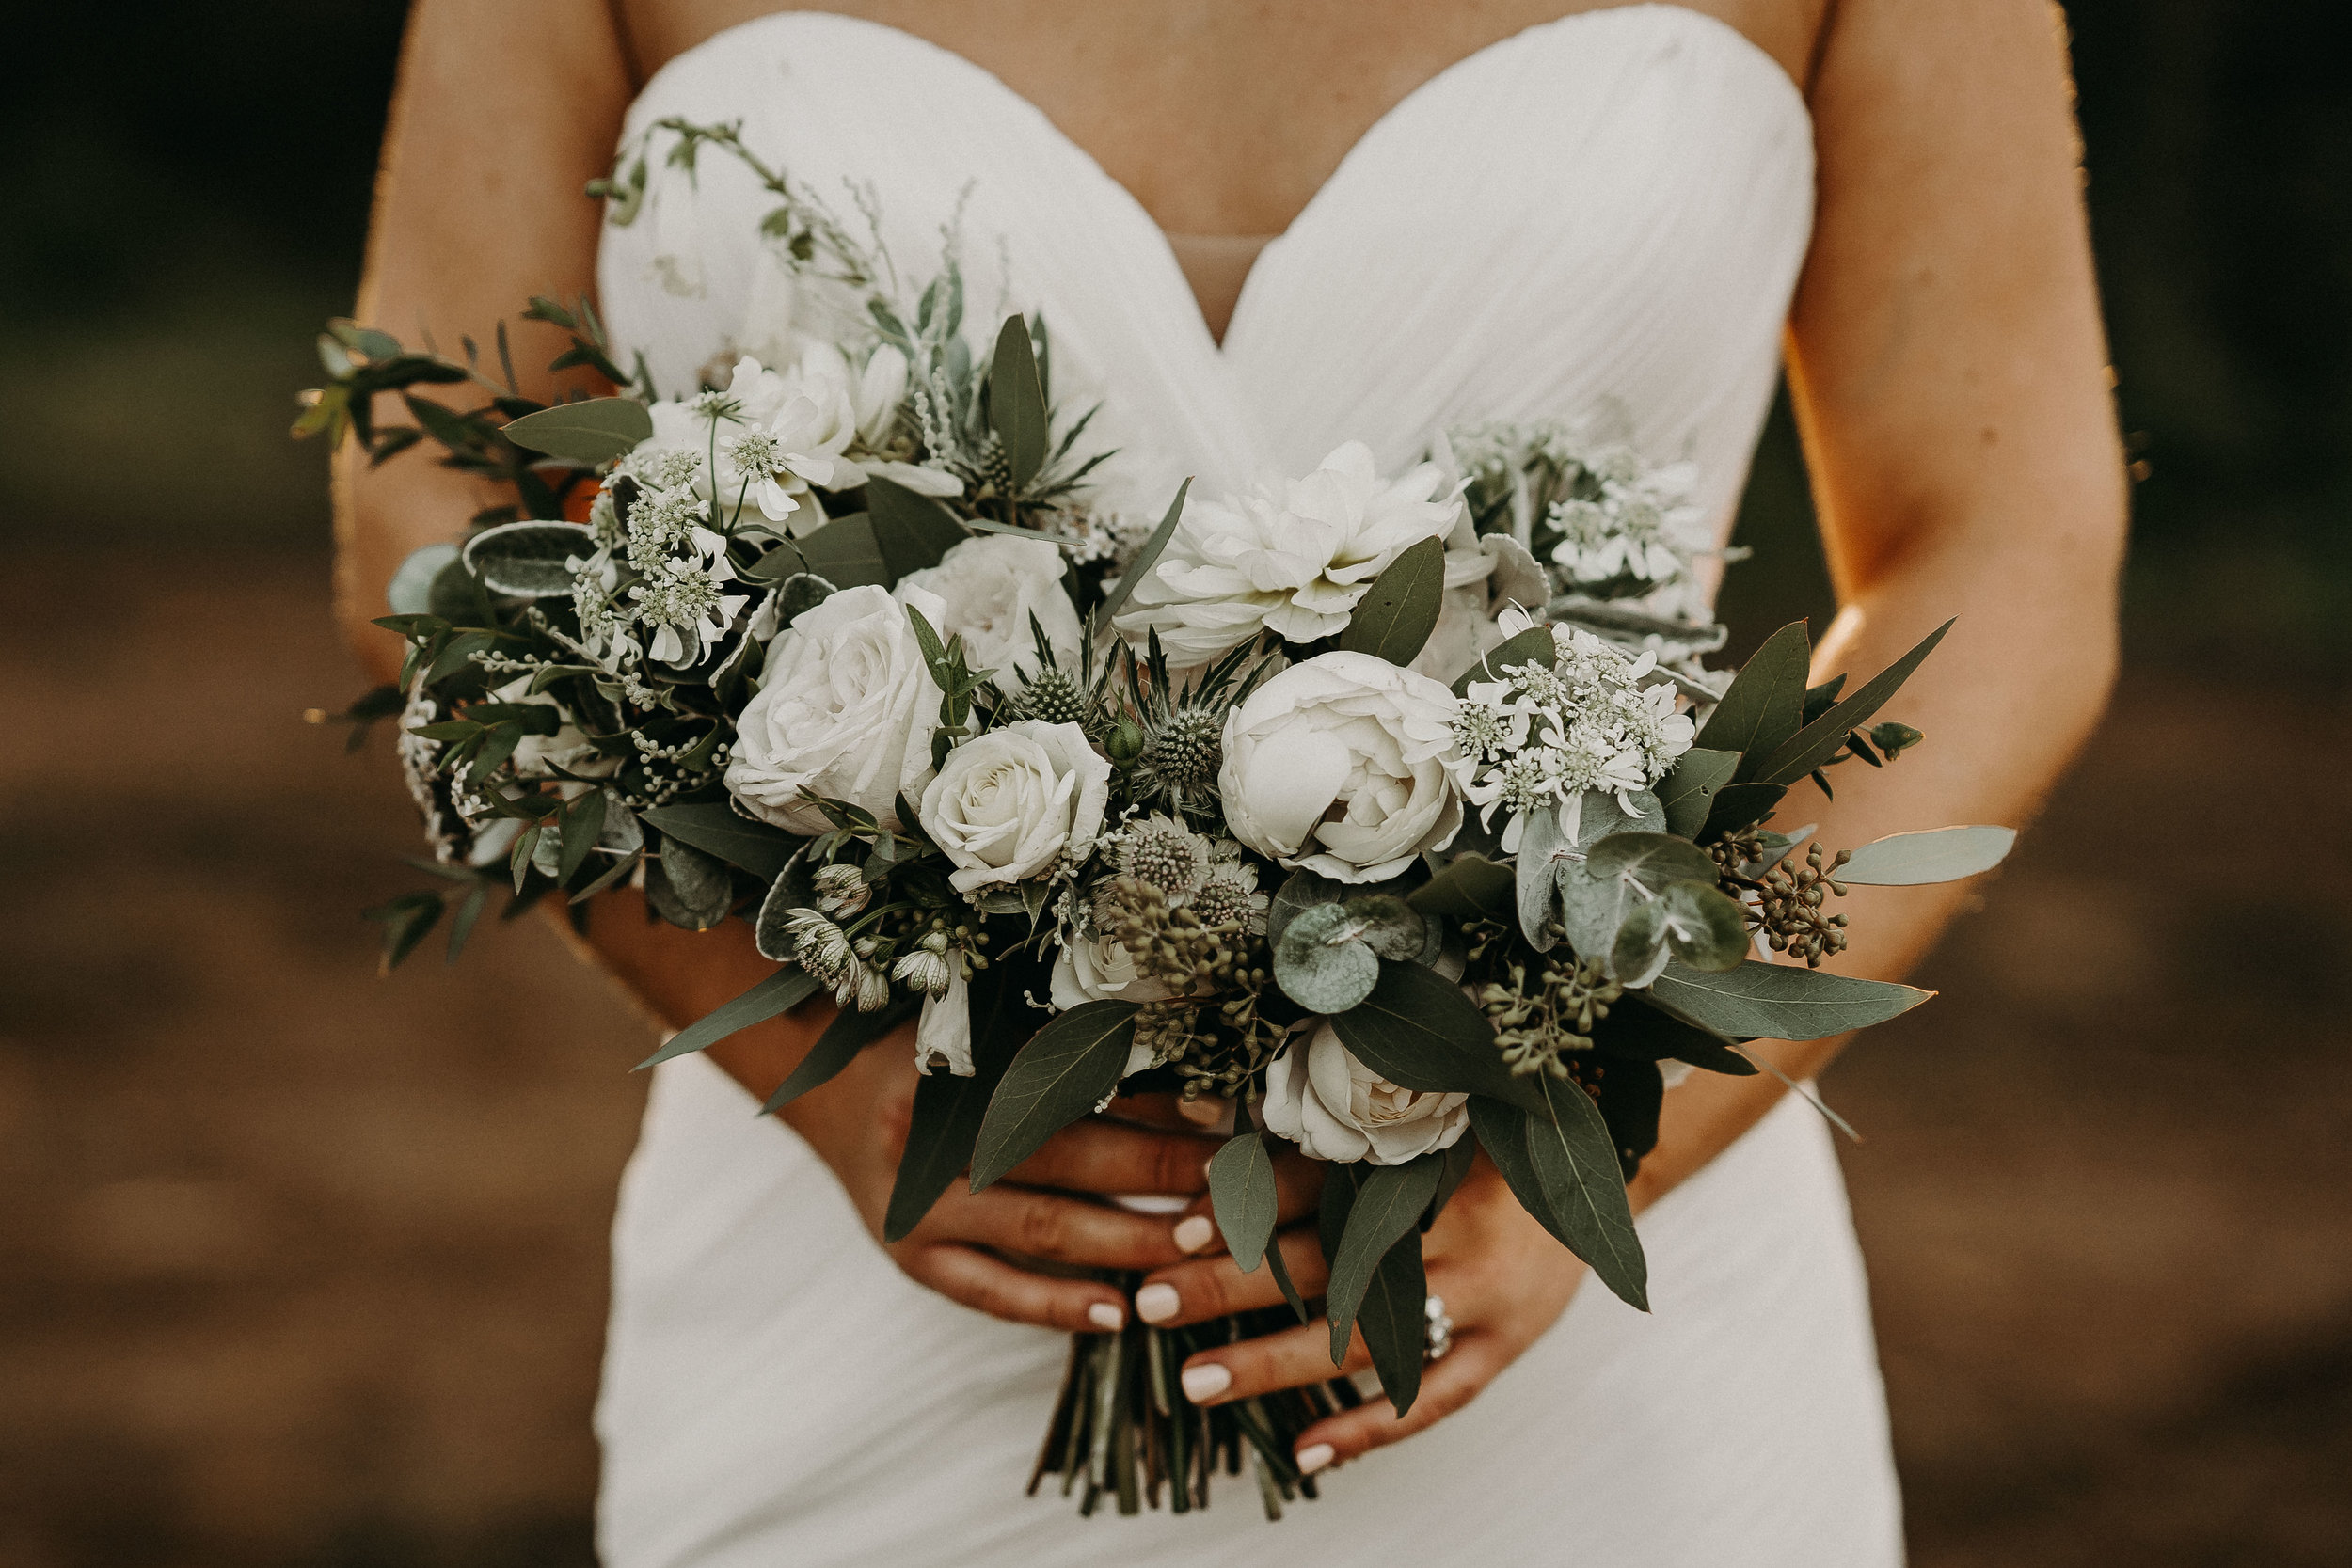 Florals - Moss & Stone Floral Design | Image - Kelsie Low Photography